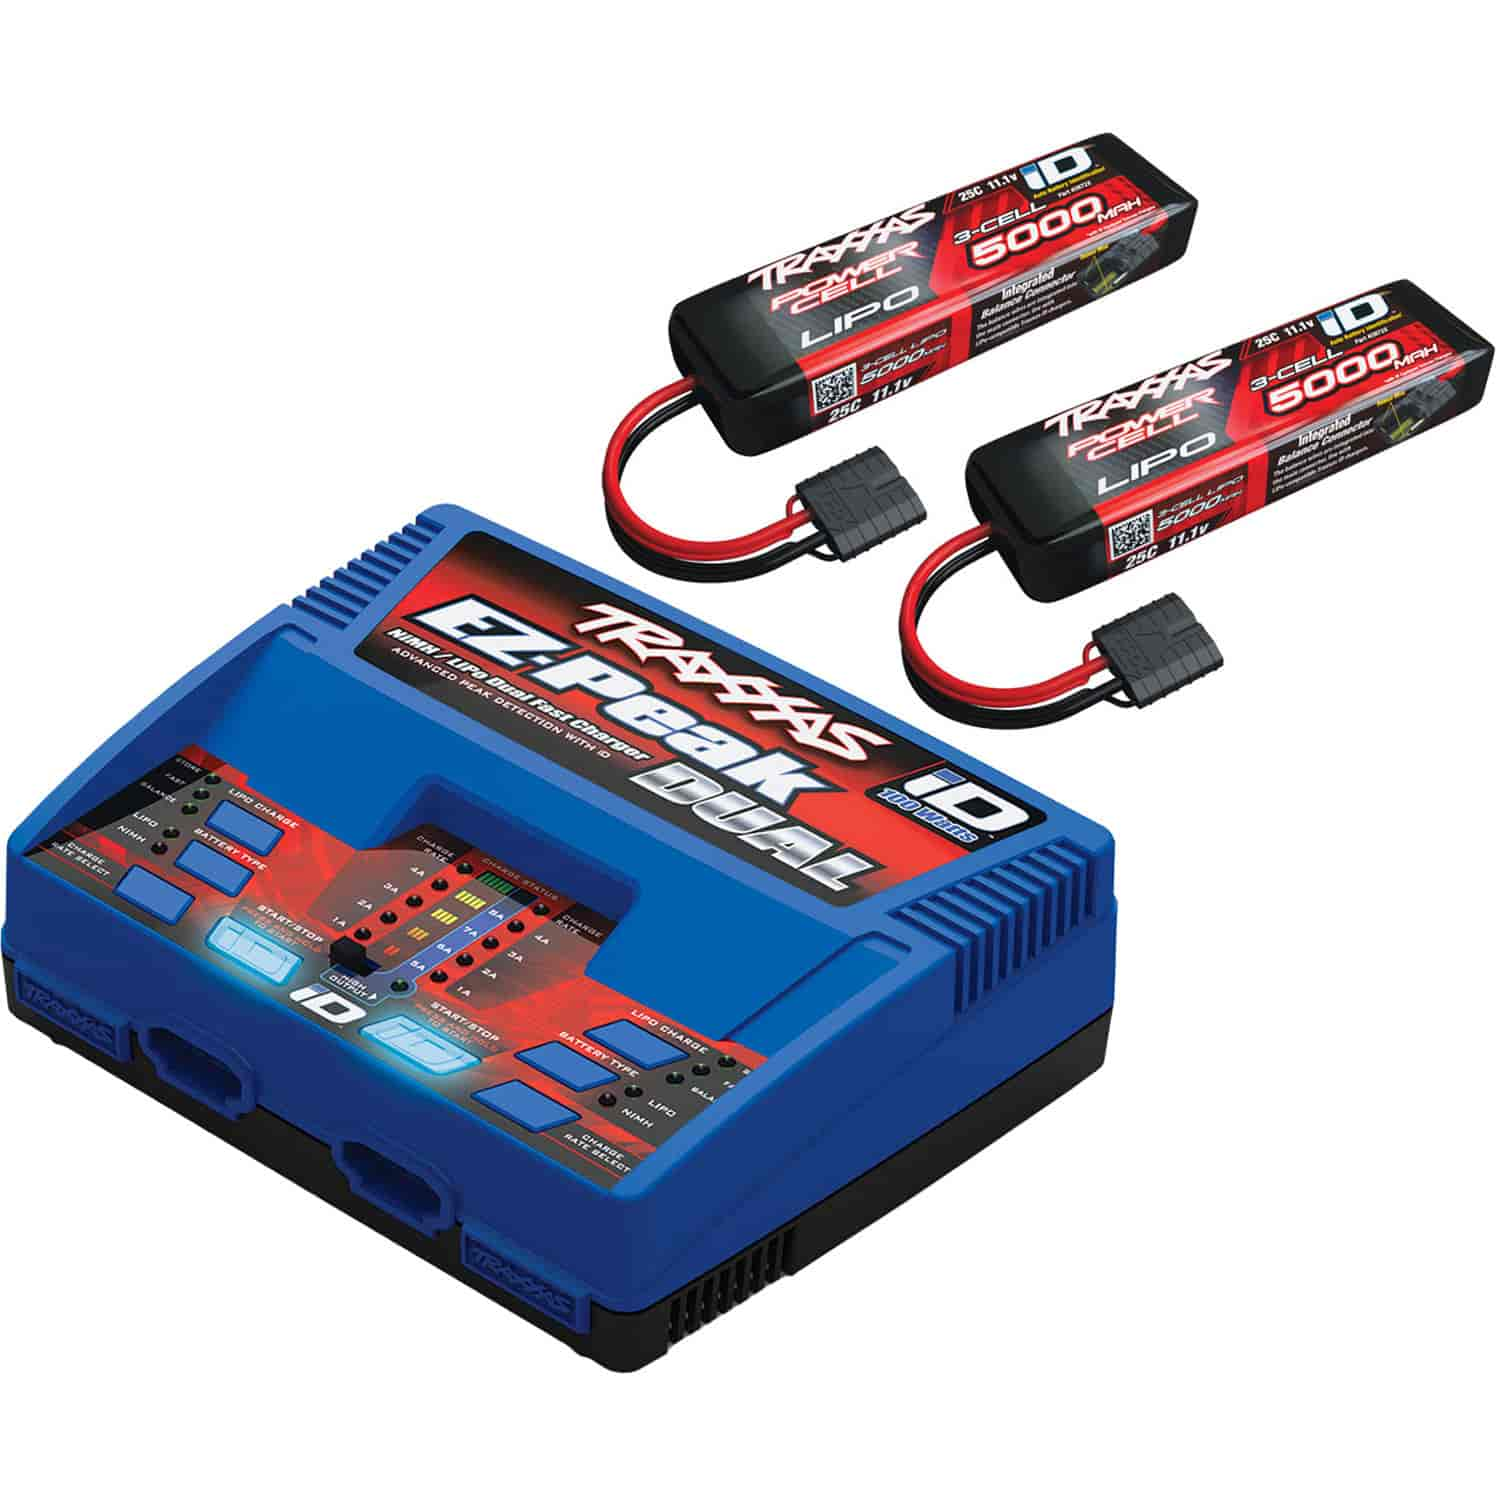 Traxxas 2990 Charger & Battery Kit Kit Includes 2 5000mAh 11 1v 3 Cell 25C LiPo Battery